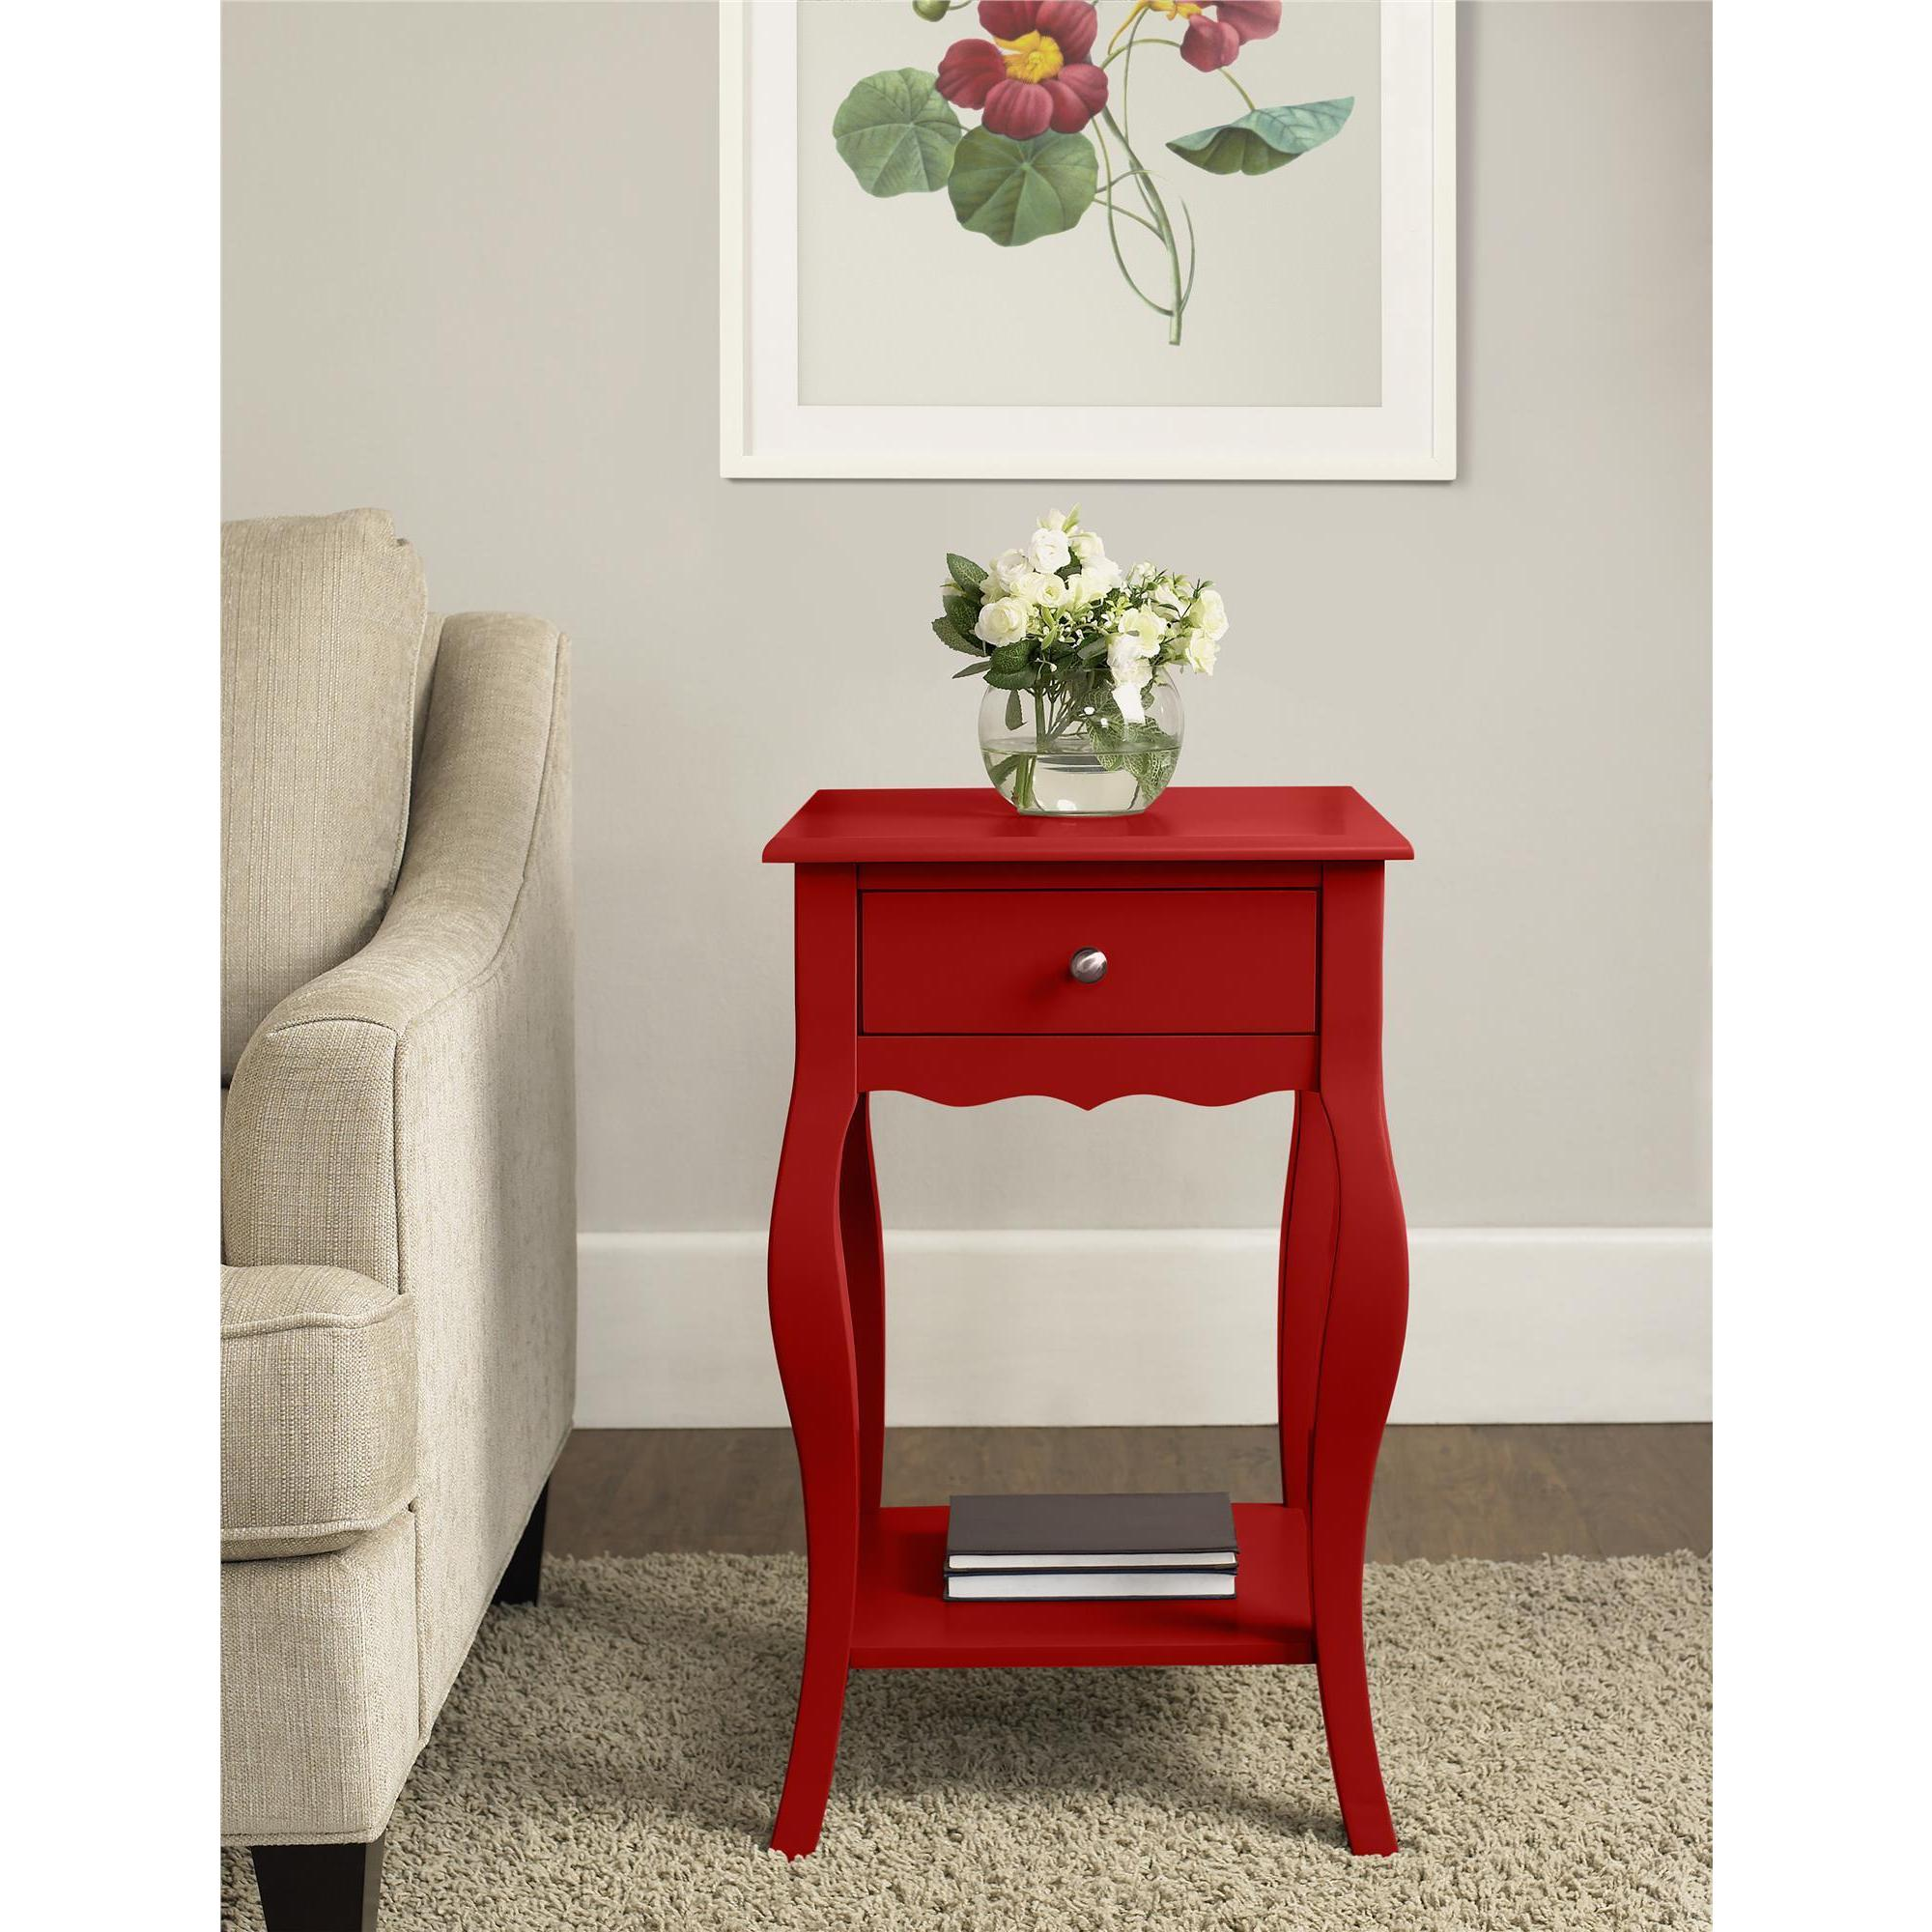 ameriwood home kennedy small accent table free shipping today altra end red lamp shades only outdoor glass side wall decoration items kitchen sets ikea designs runner set white